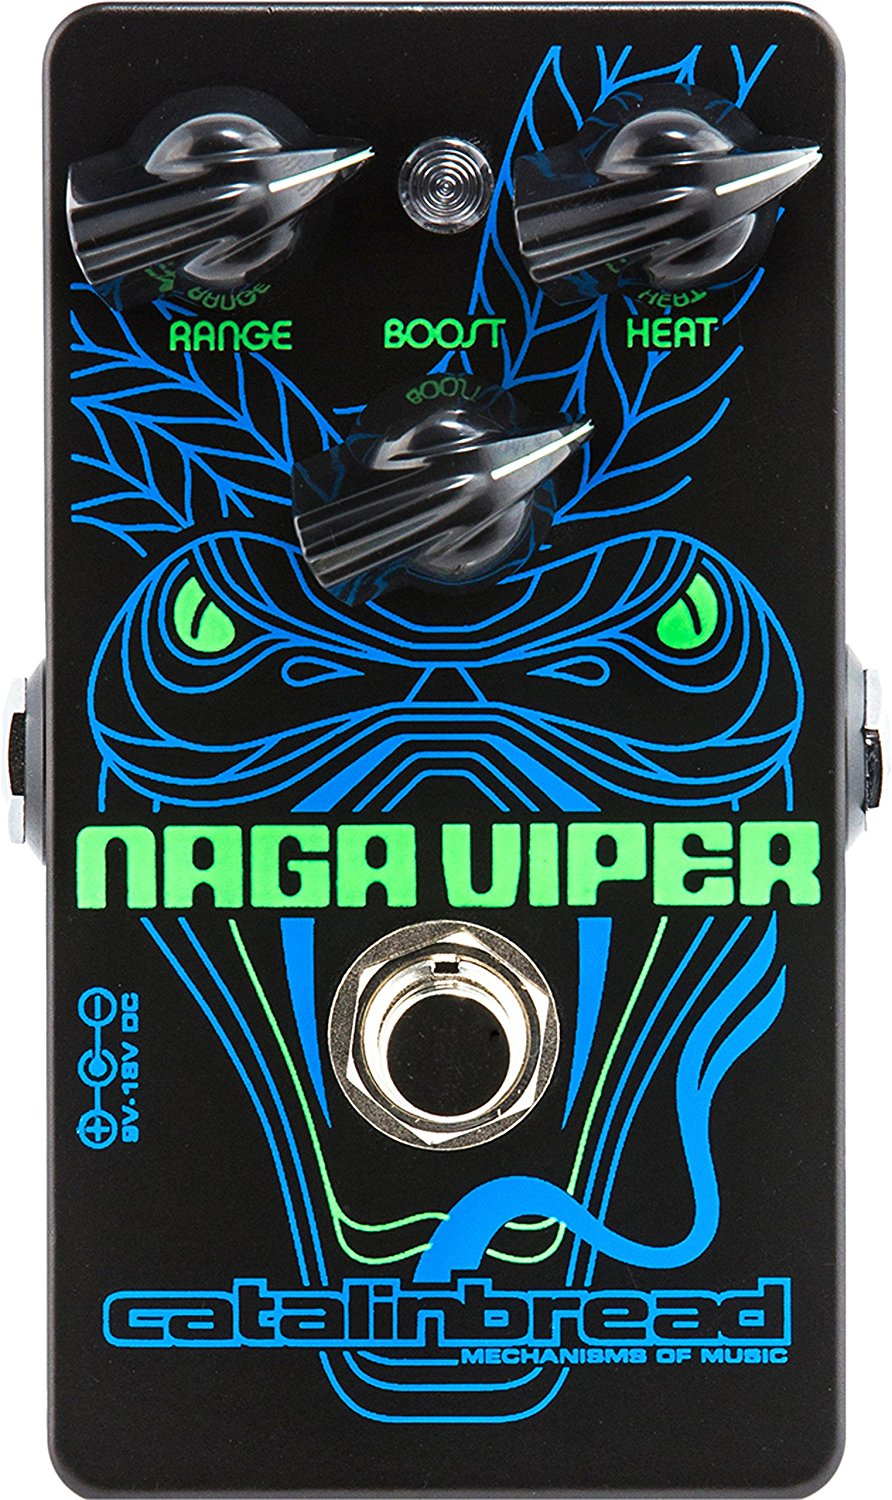 The 3 Best Treble Booster Pedals Of 2018 Reviews Dallas Rangemaster Pedal Wiring Diagram